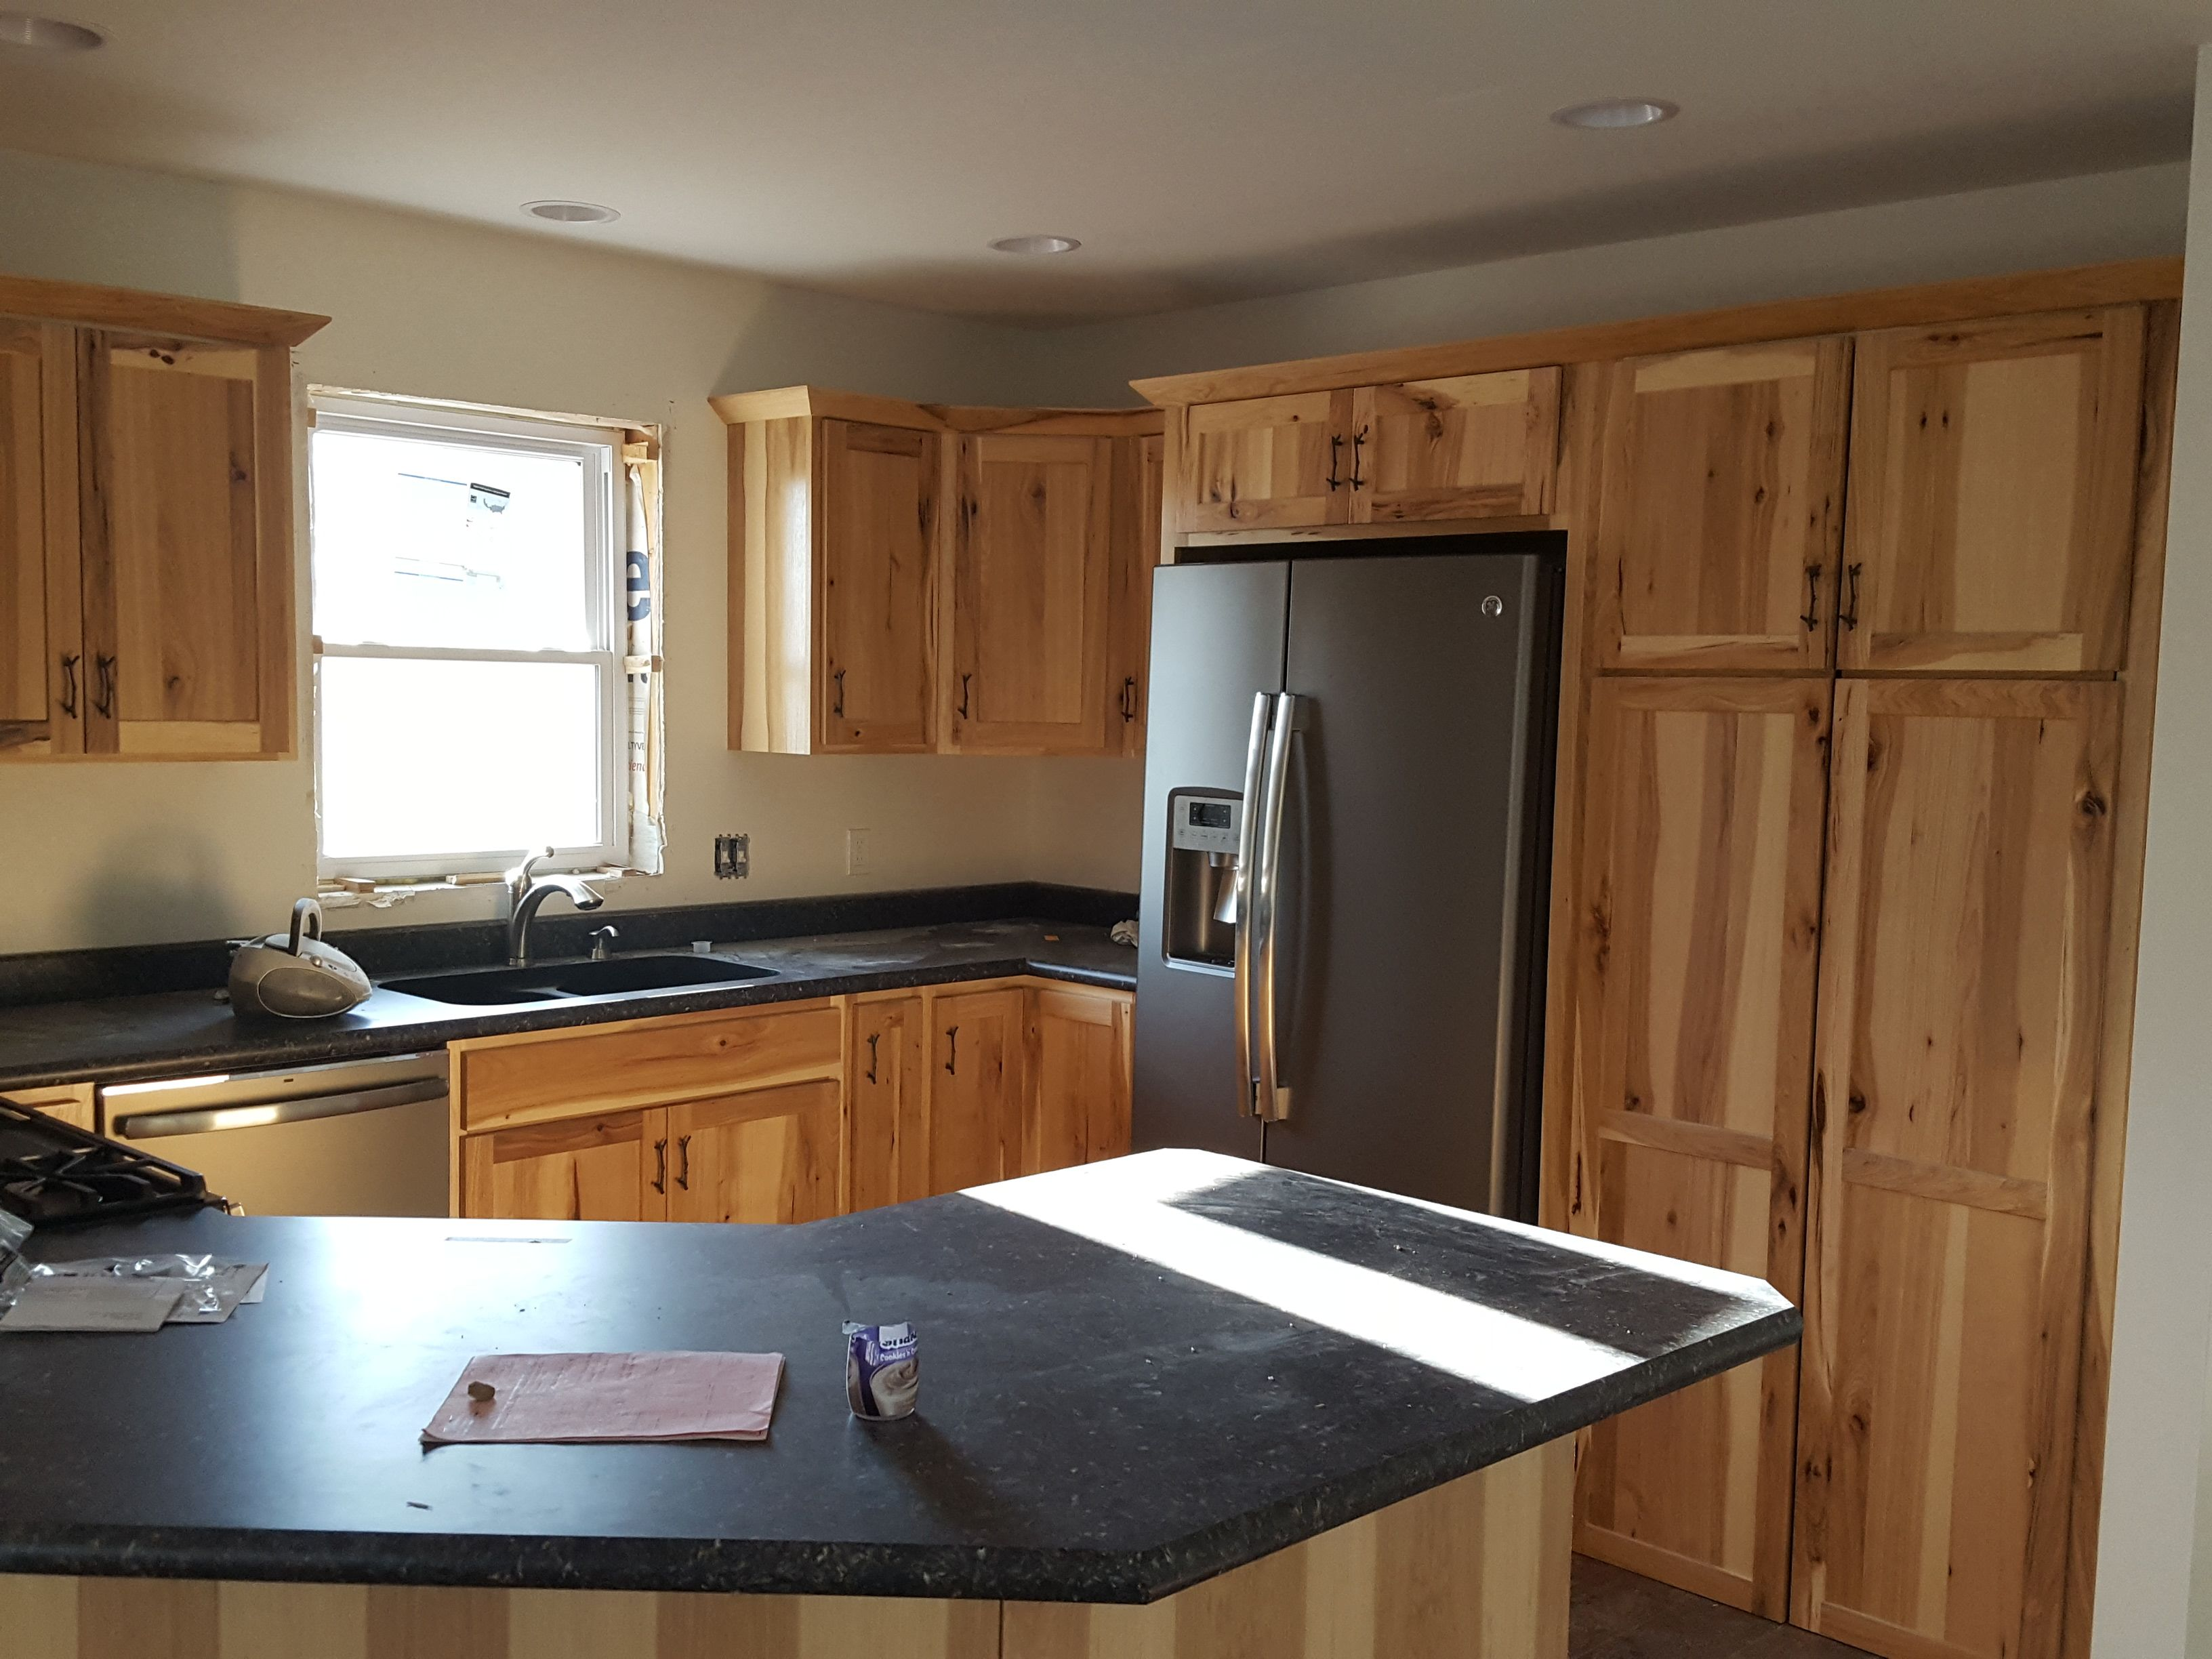 Best 25 Rustic Hickory Cabinets Ideas On Pinterest Log Cabin